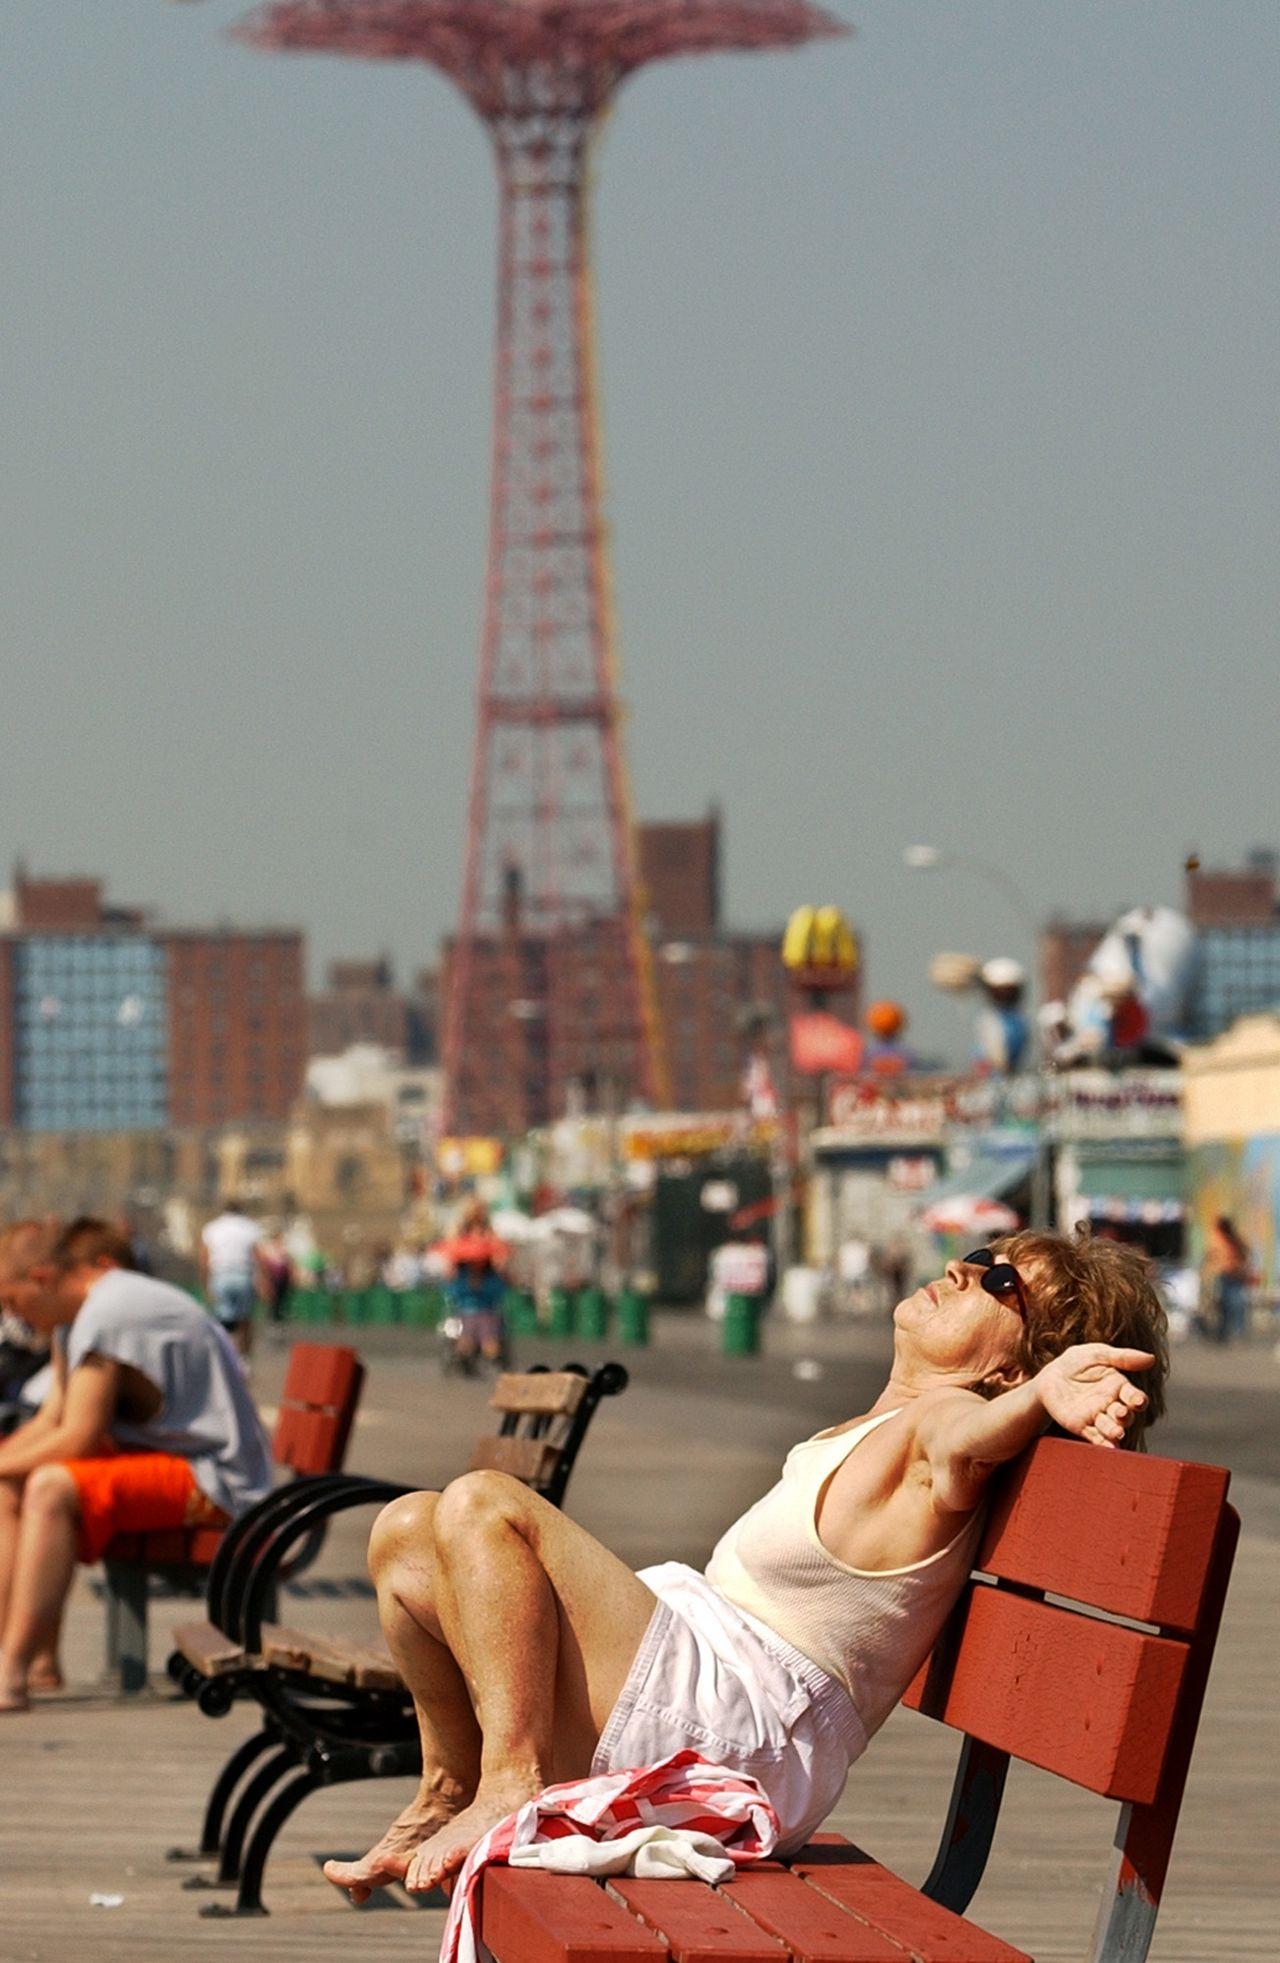 A woman basks in the sun on the Coney Island boardwalk Tuesday, April 16, 2002, in New York as record temperatures in the 90's blanketed the metropolitan area on a spring day. It's not even May yet but it feels like July this week as temperatures climb into the 80s and the low 90s from the Plains to the East Coast, drawing people outside in shorts and T-shirts. (AP Photo/Kathy Willens)